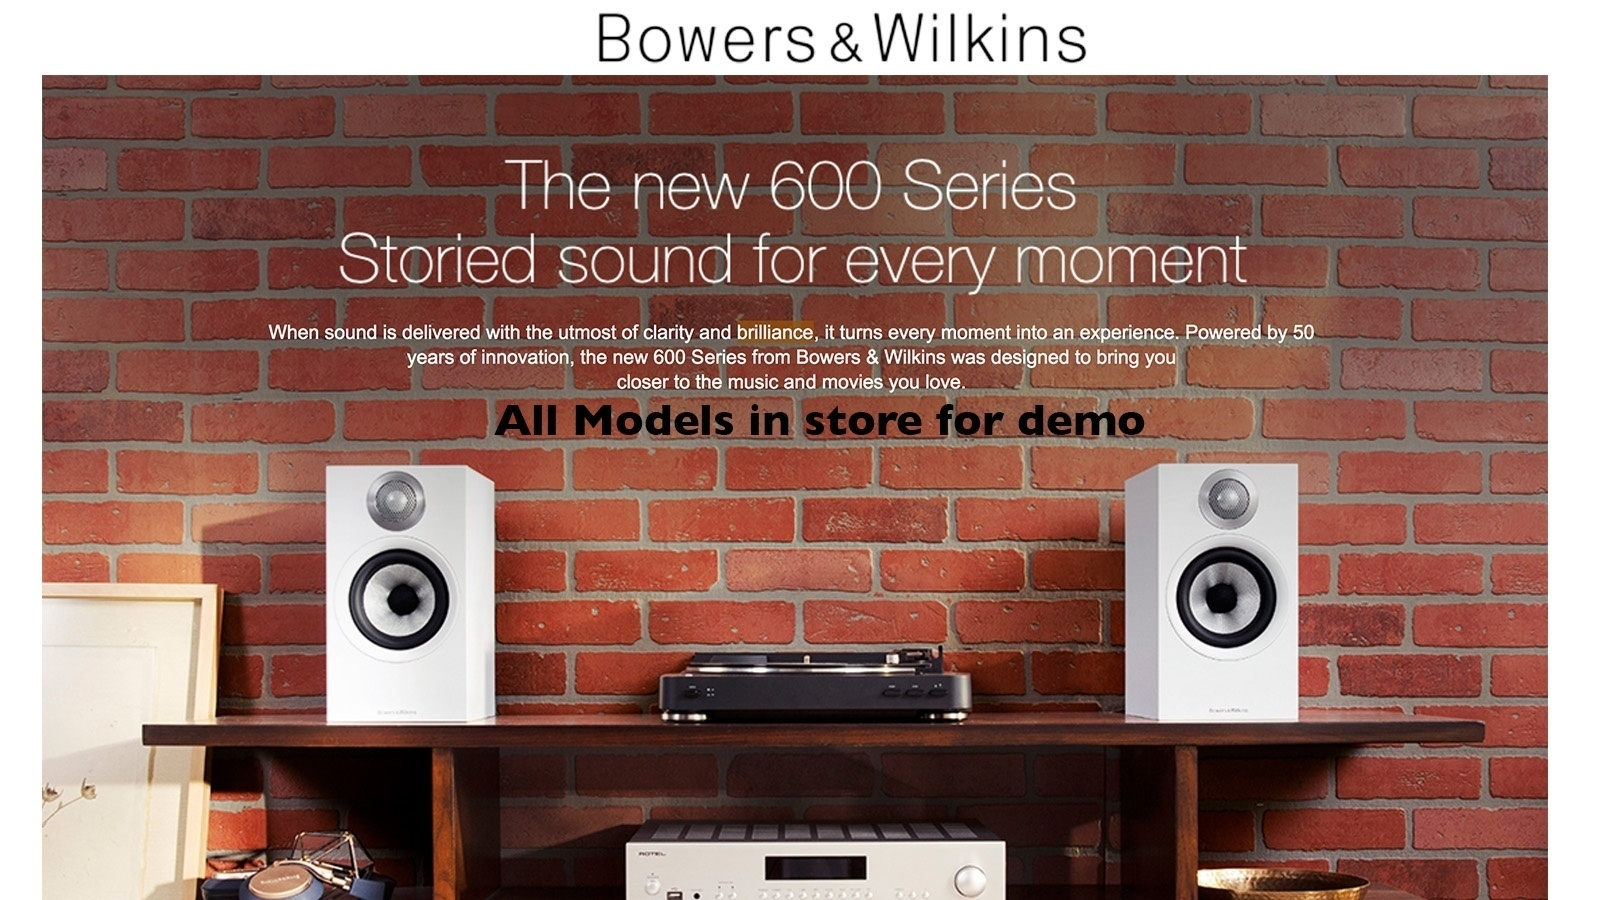 The new 600 series